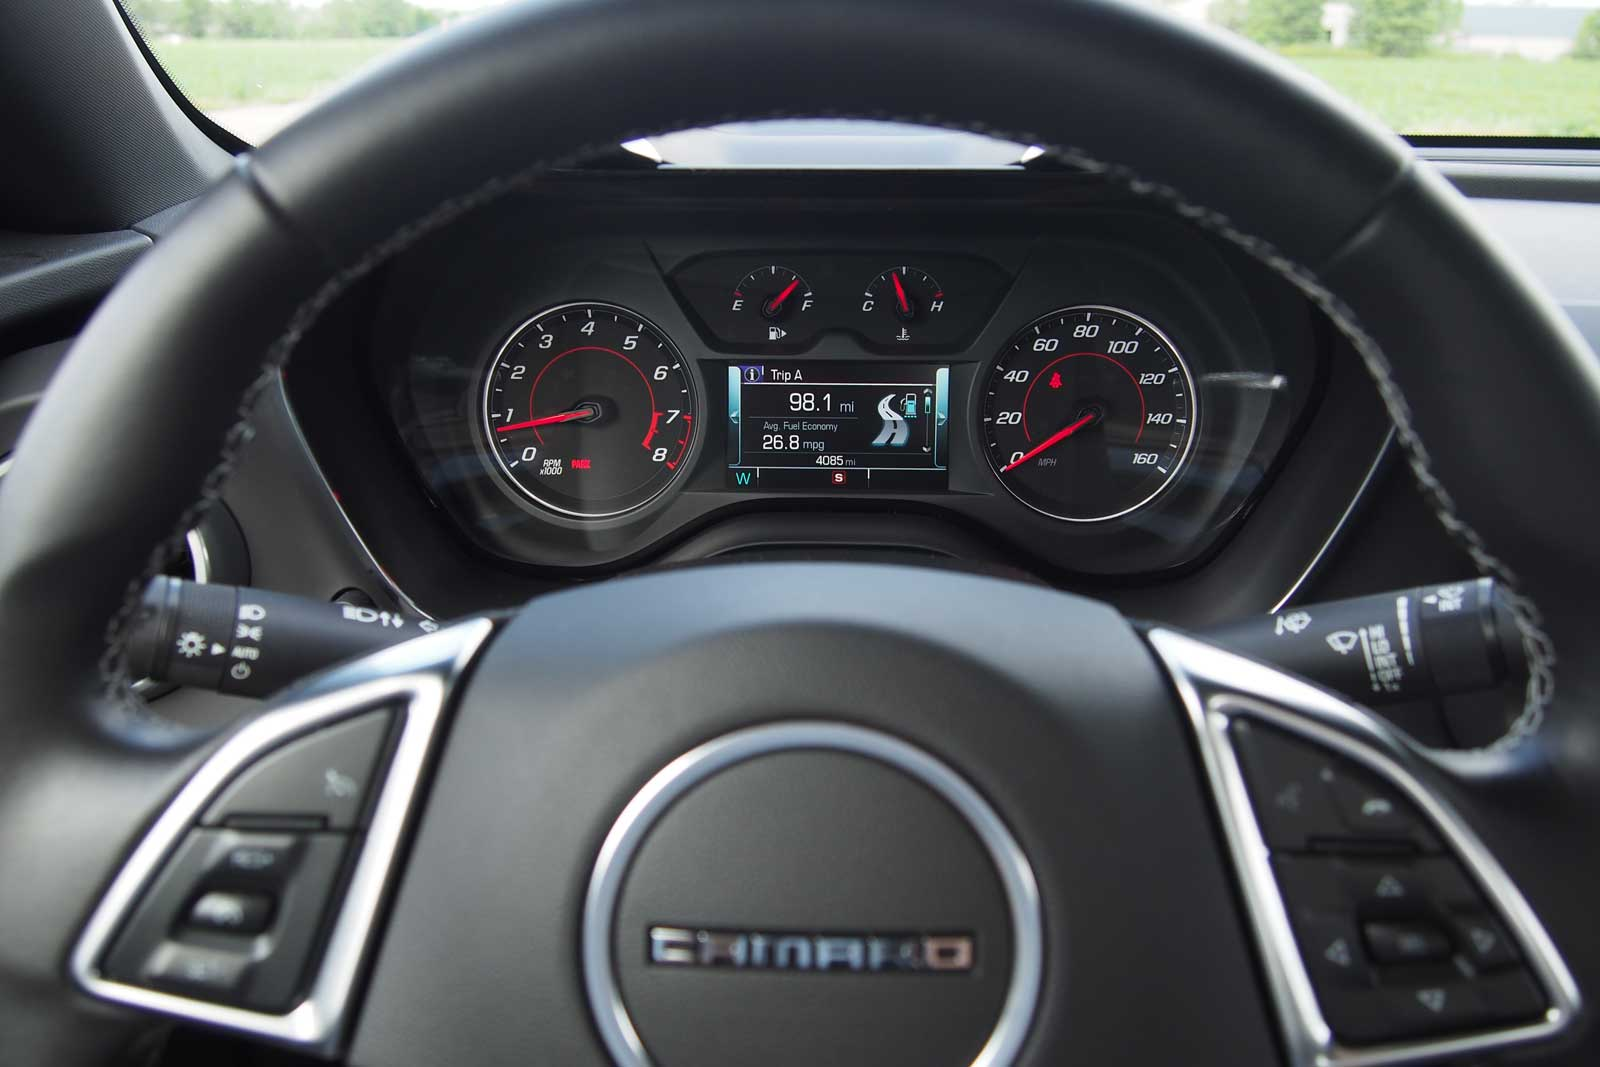 2016 Chevrolet Camaro 1lt Gauges 02